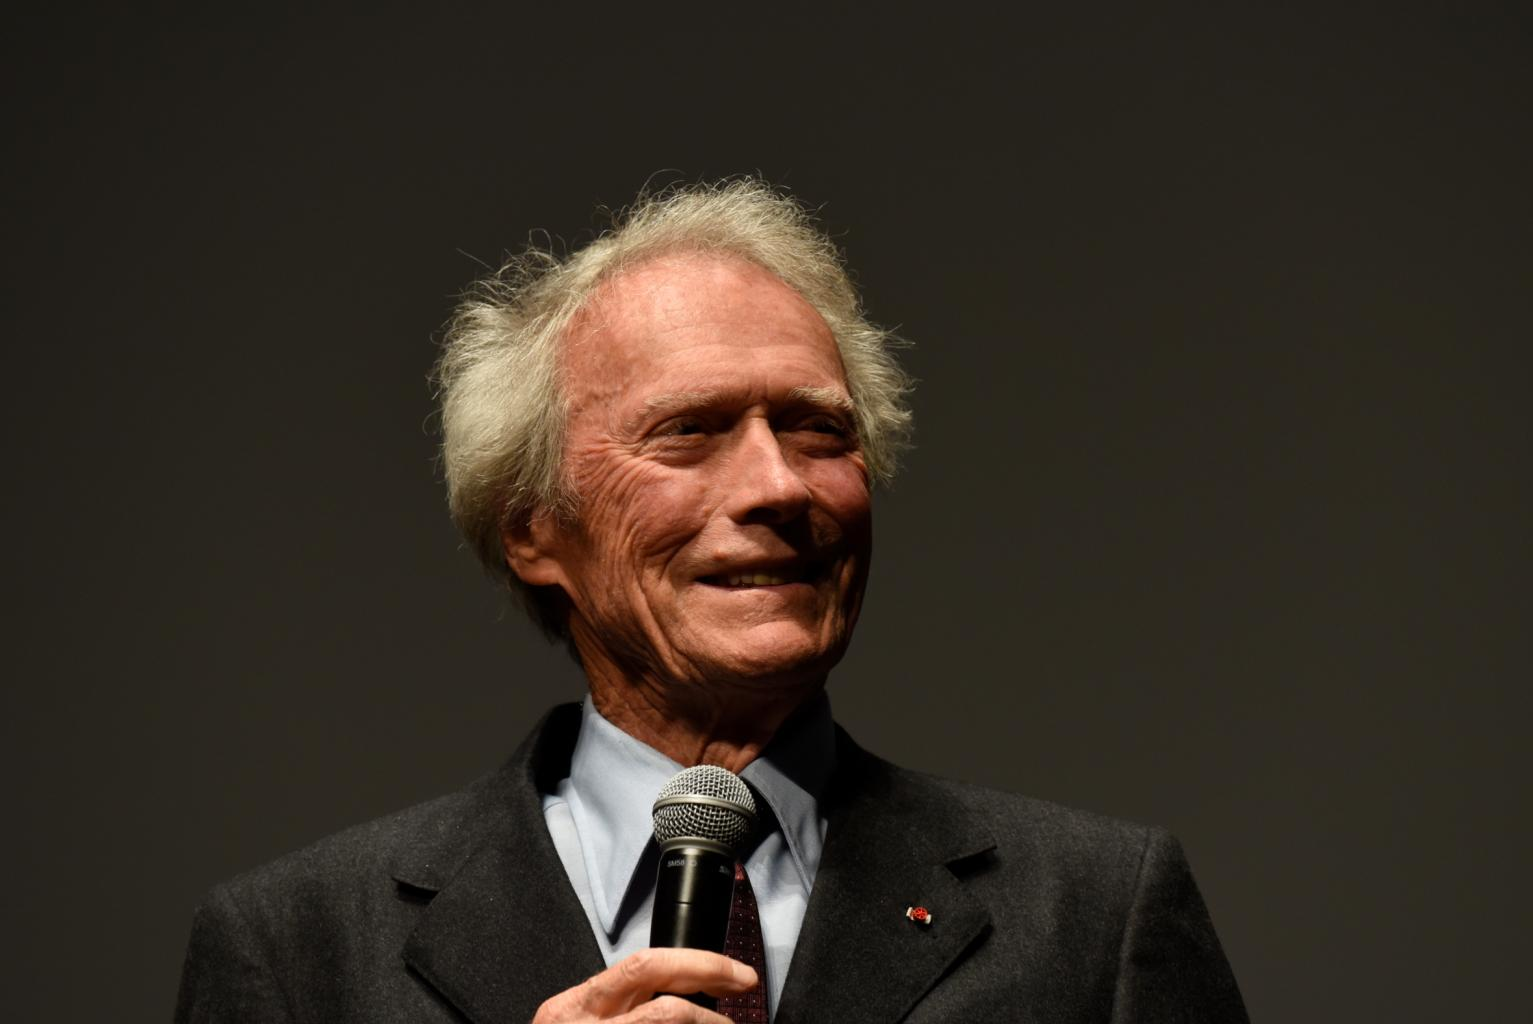 Clint Eastwood, 86, Says He'll Return To Acting 'Someday'